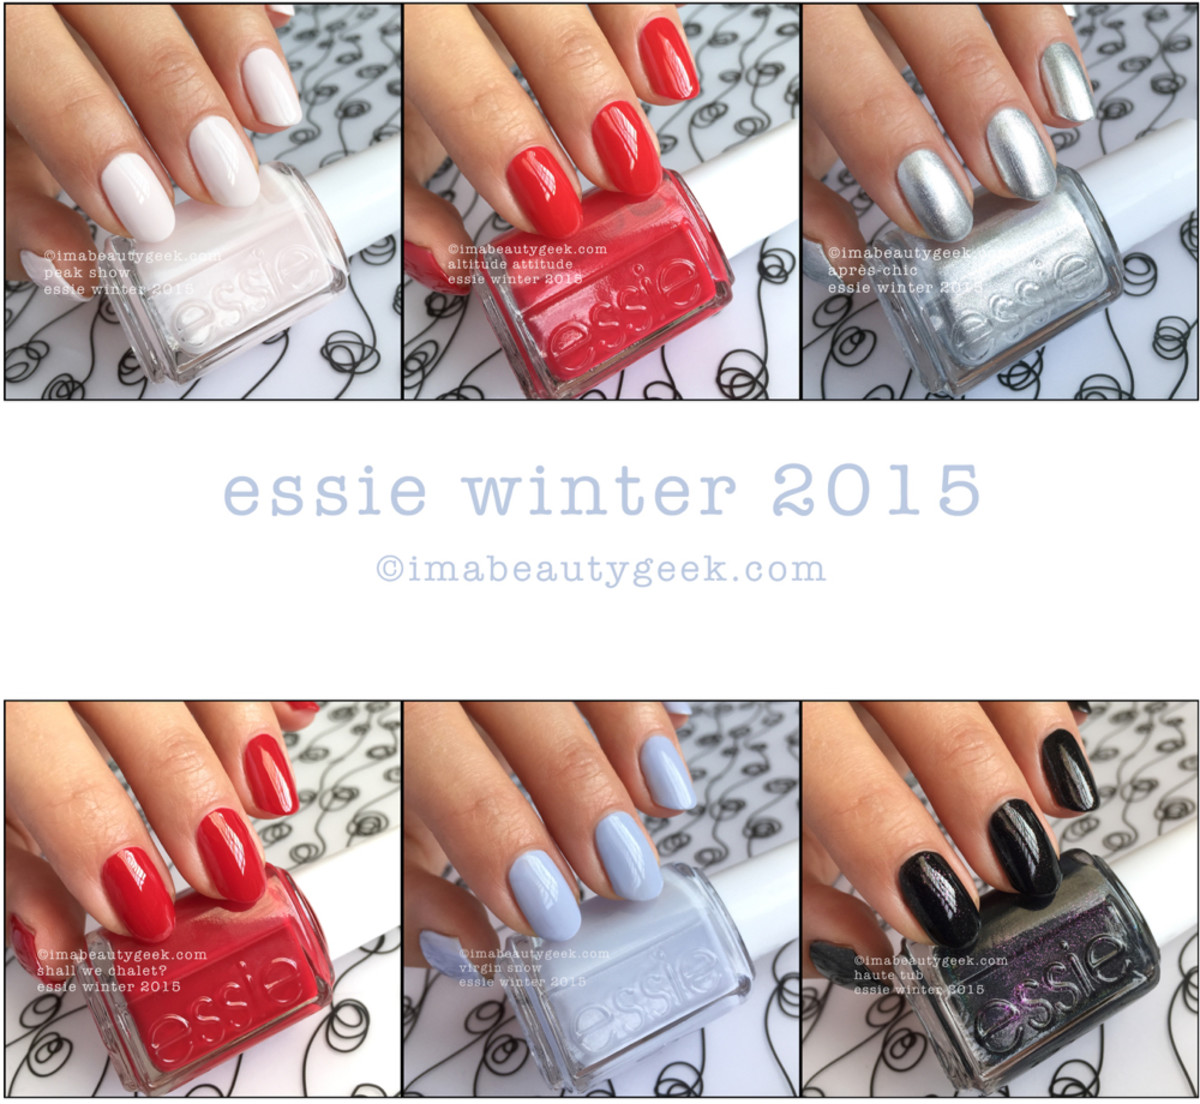 Essie Winter 2015 Swatches and Review Beautgyeeks